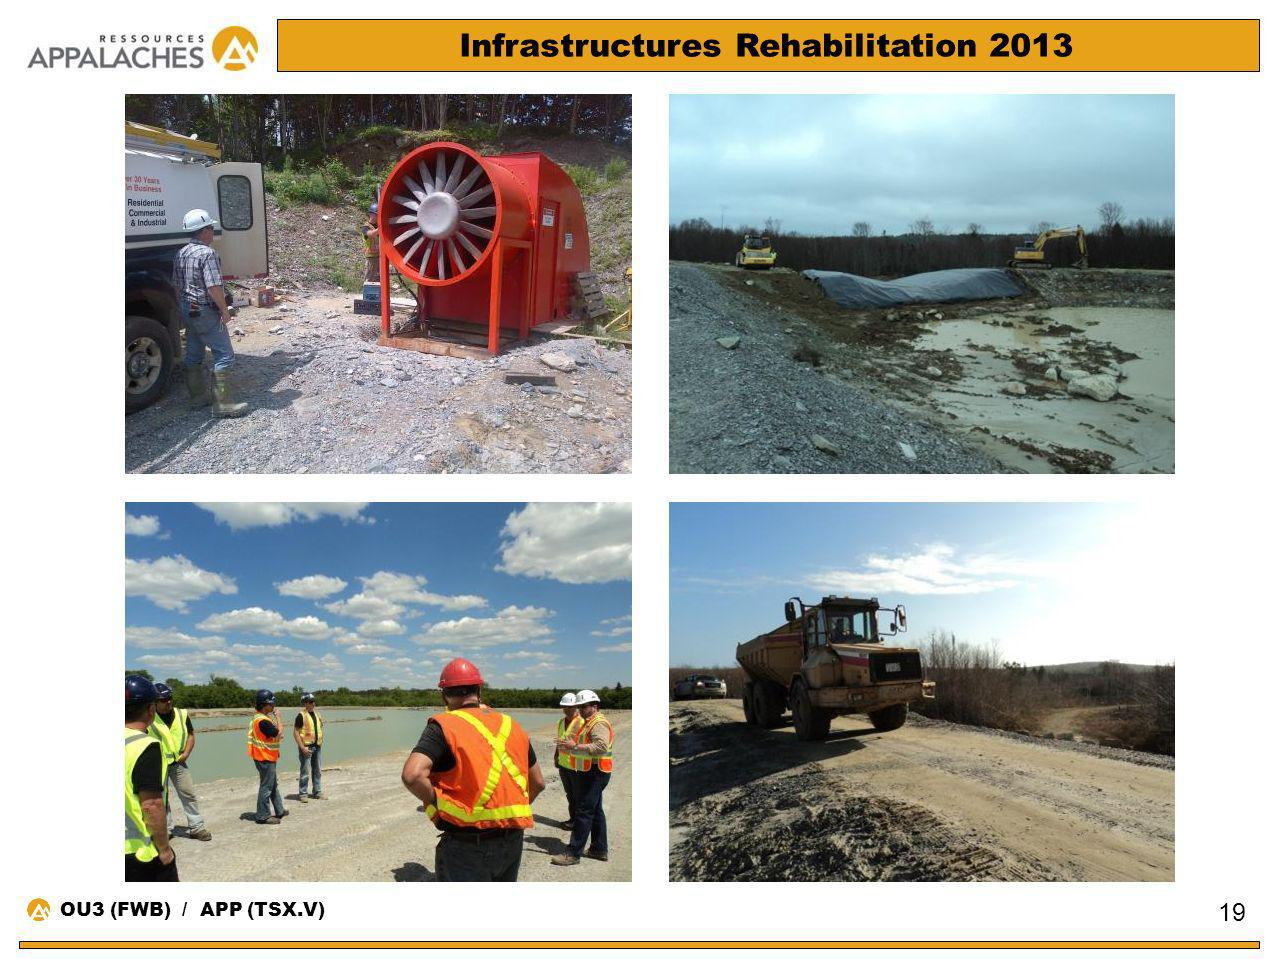 Infrastructures Rehabilitation 2013